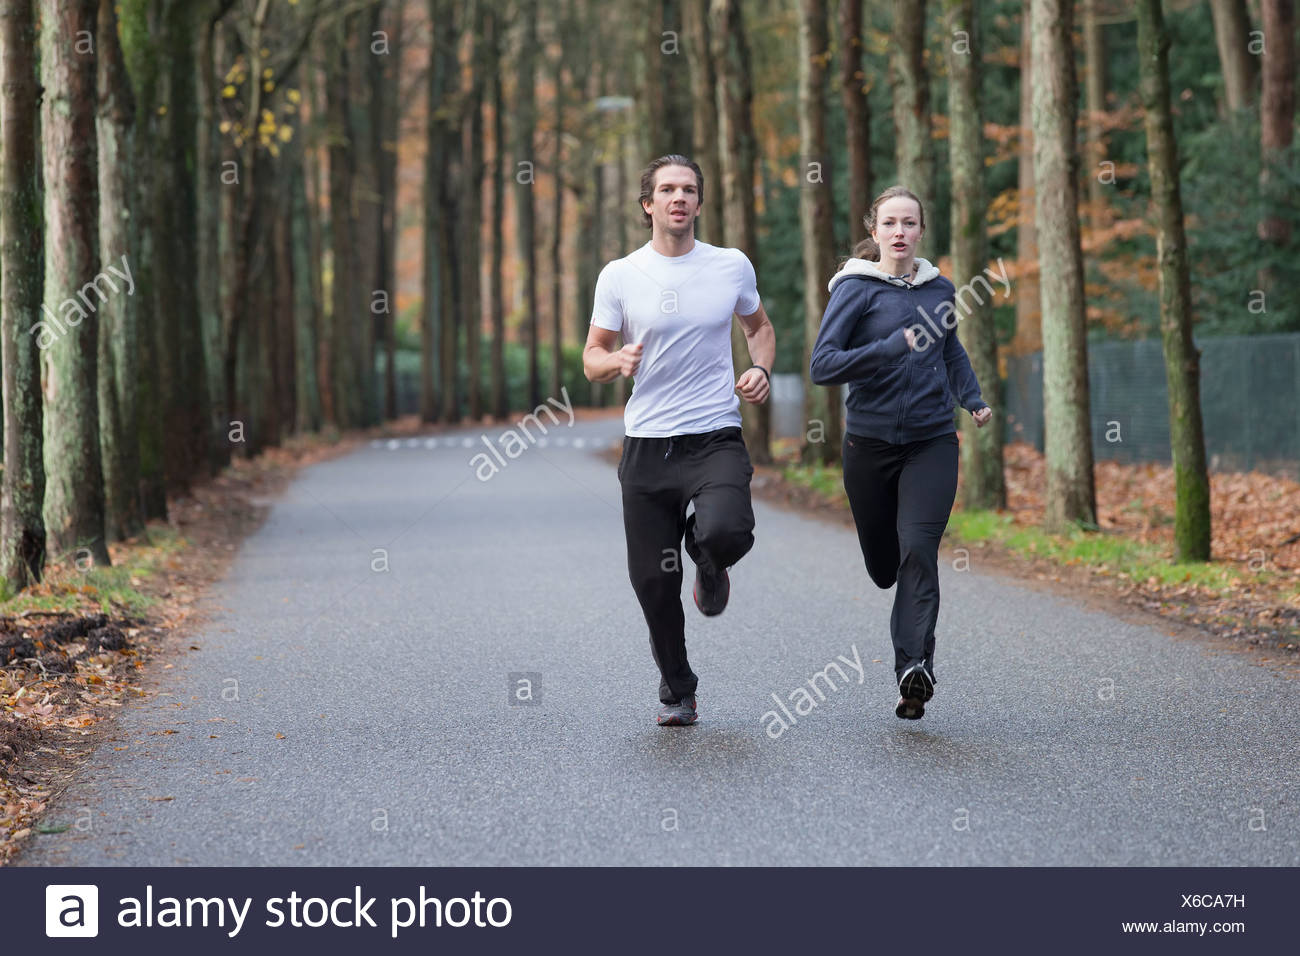 Couple running through forest - Stock Image